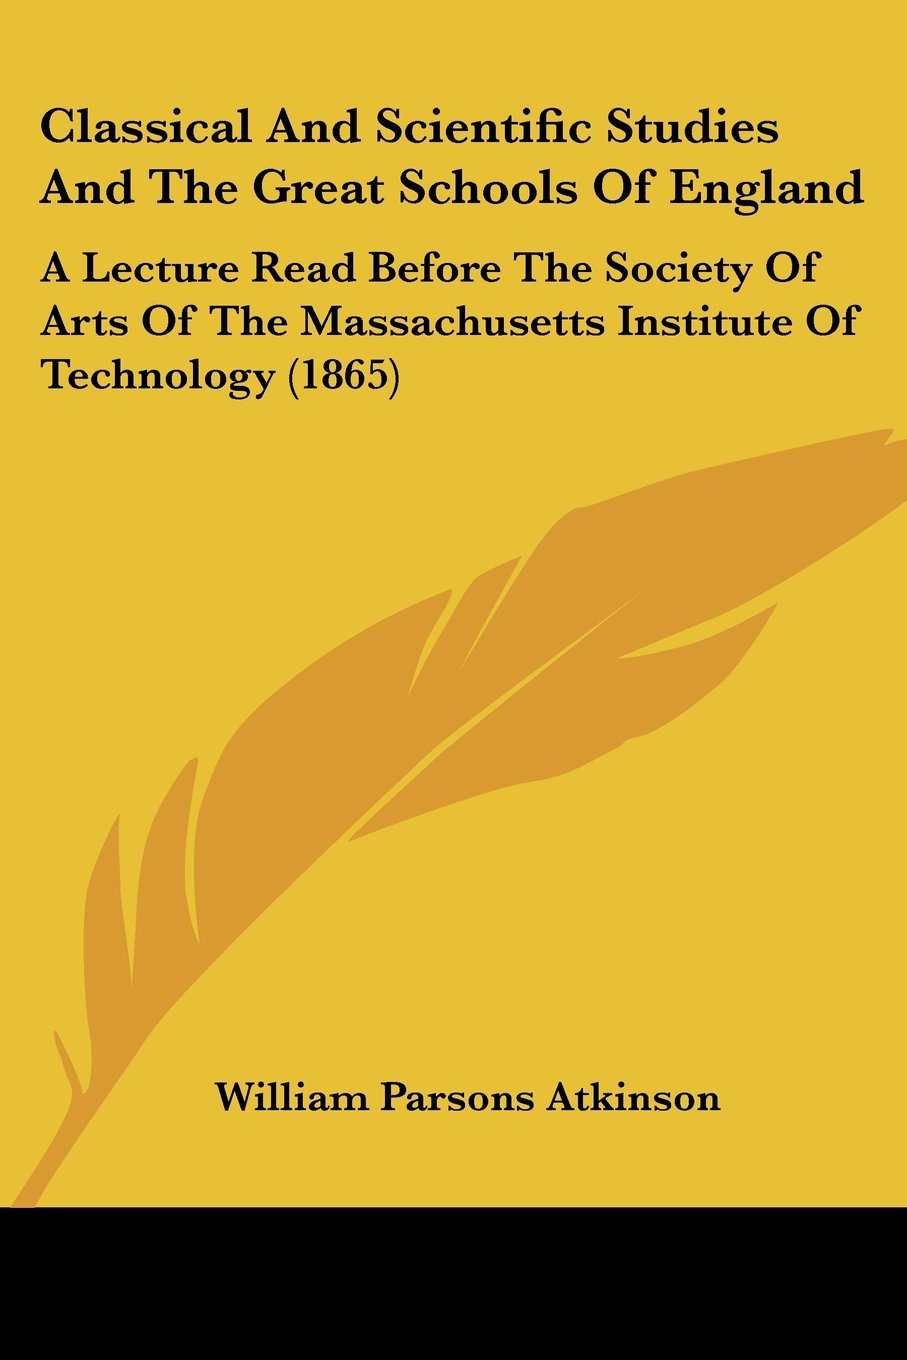 Download Classical And Scientific Studies And The Great Schools Of England: A Lecture Read Before The Society Of Arts Of The Massachusetts Institute Of Technology (1865) pdf epub